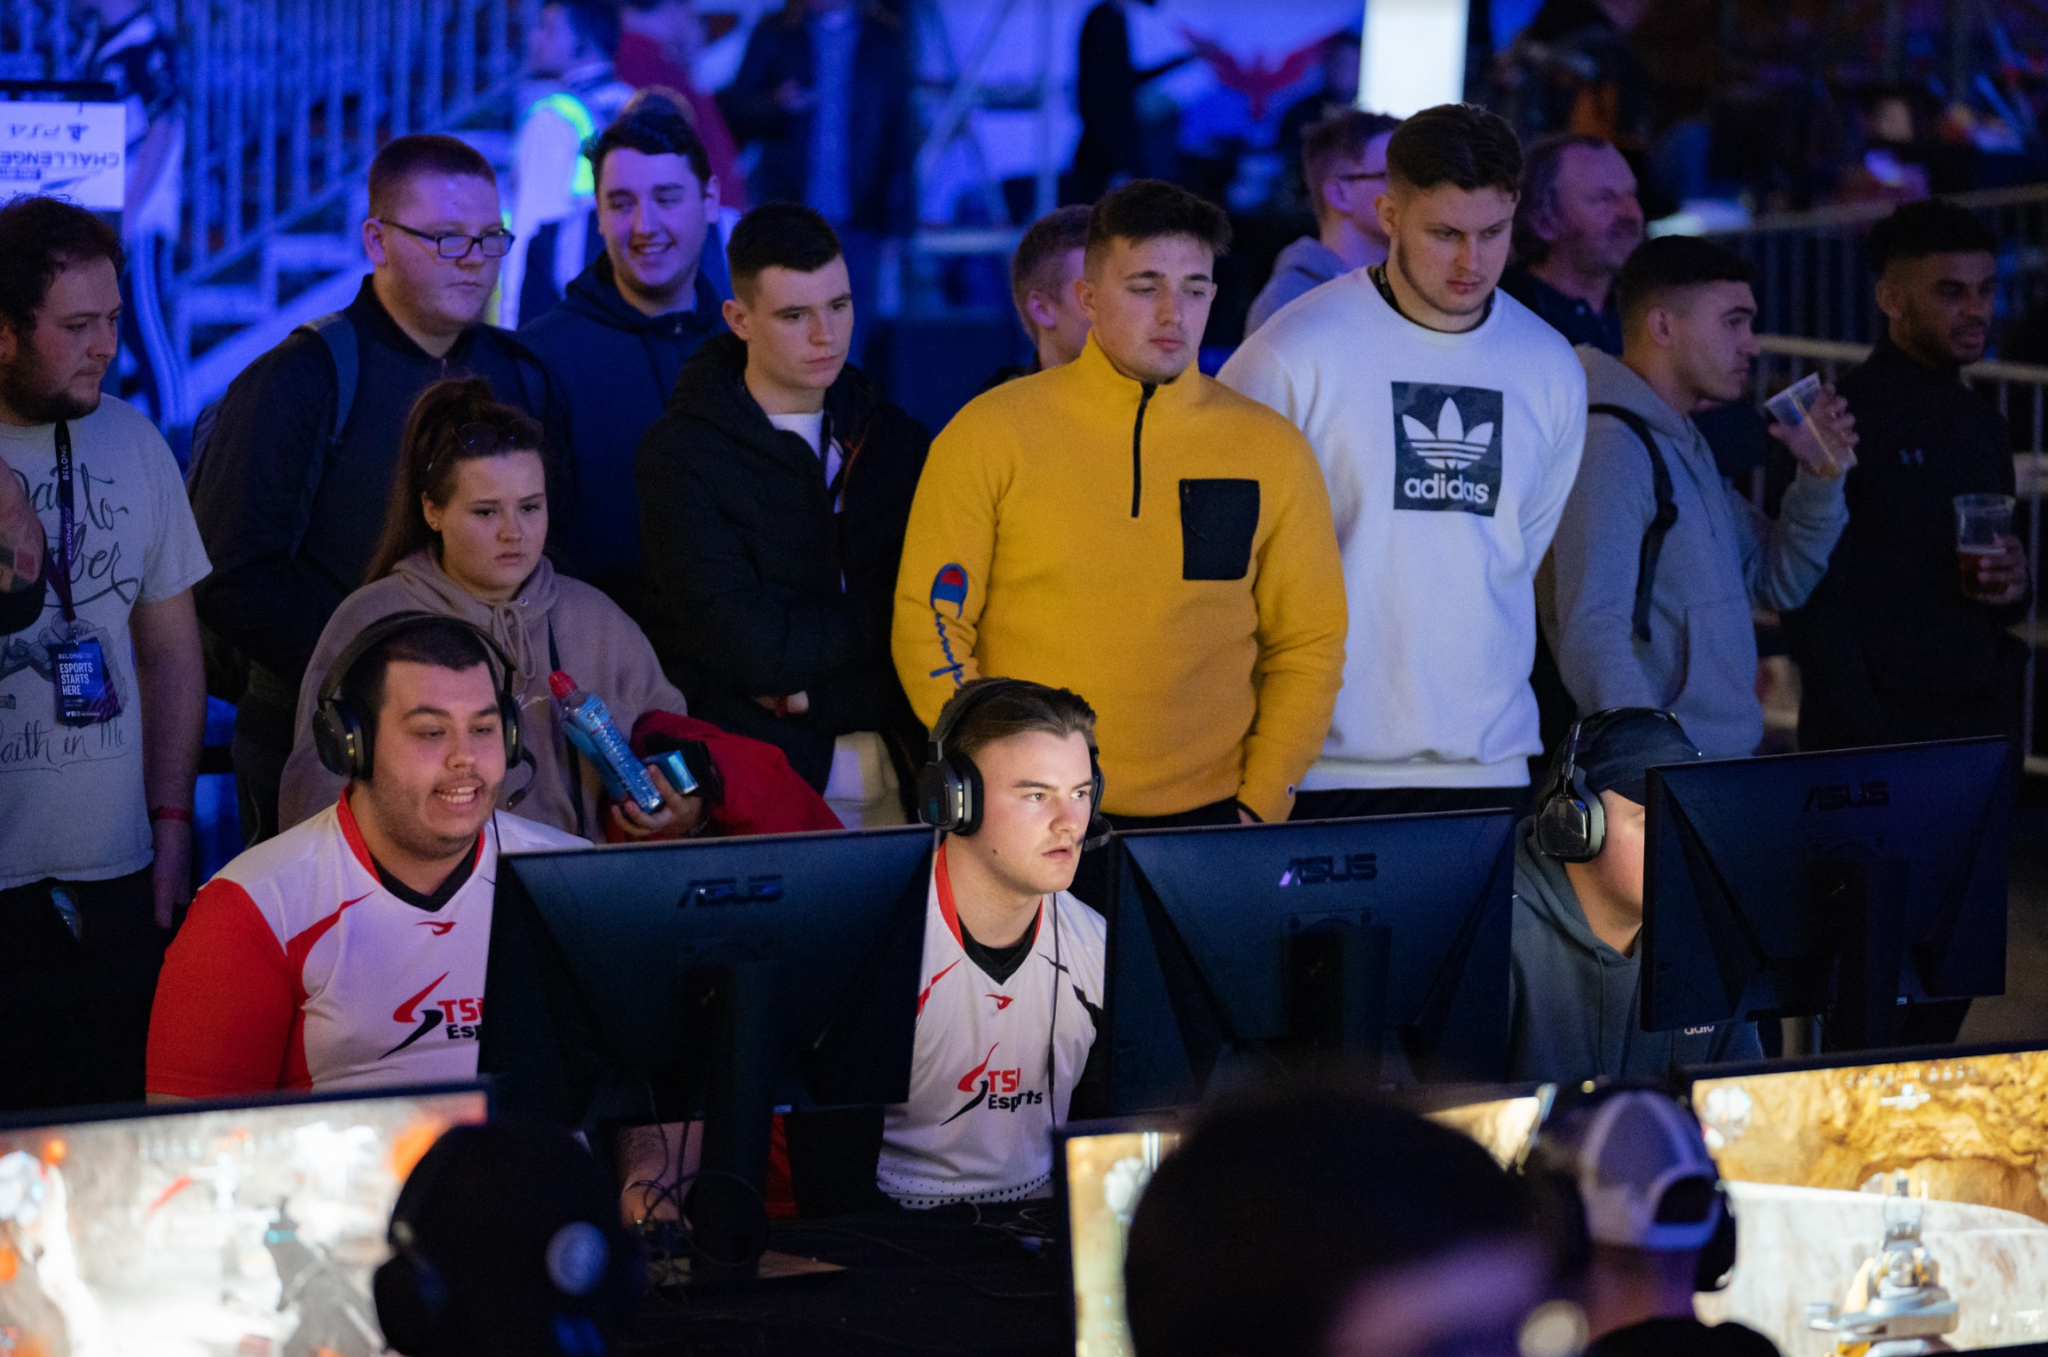 Call of Duty Challengers players at LAN event